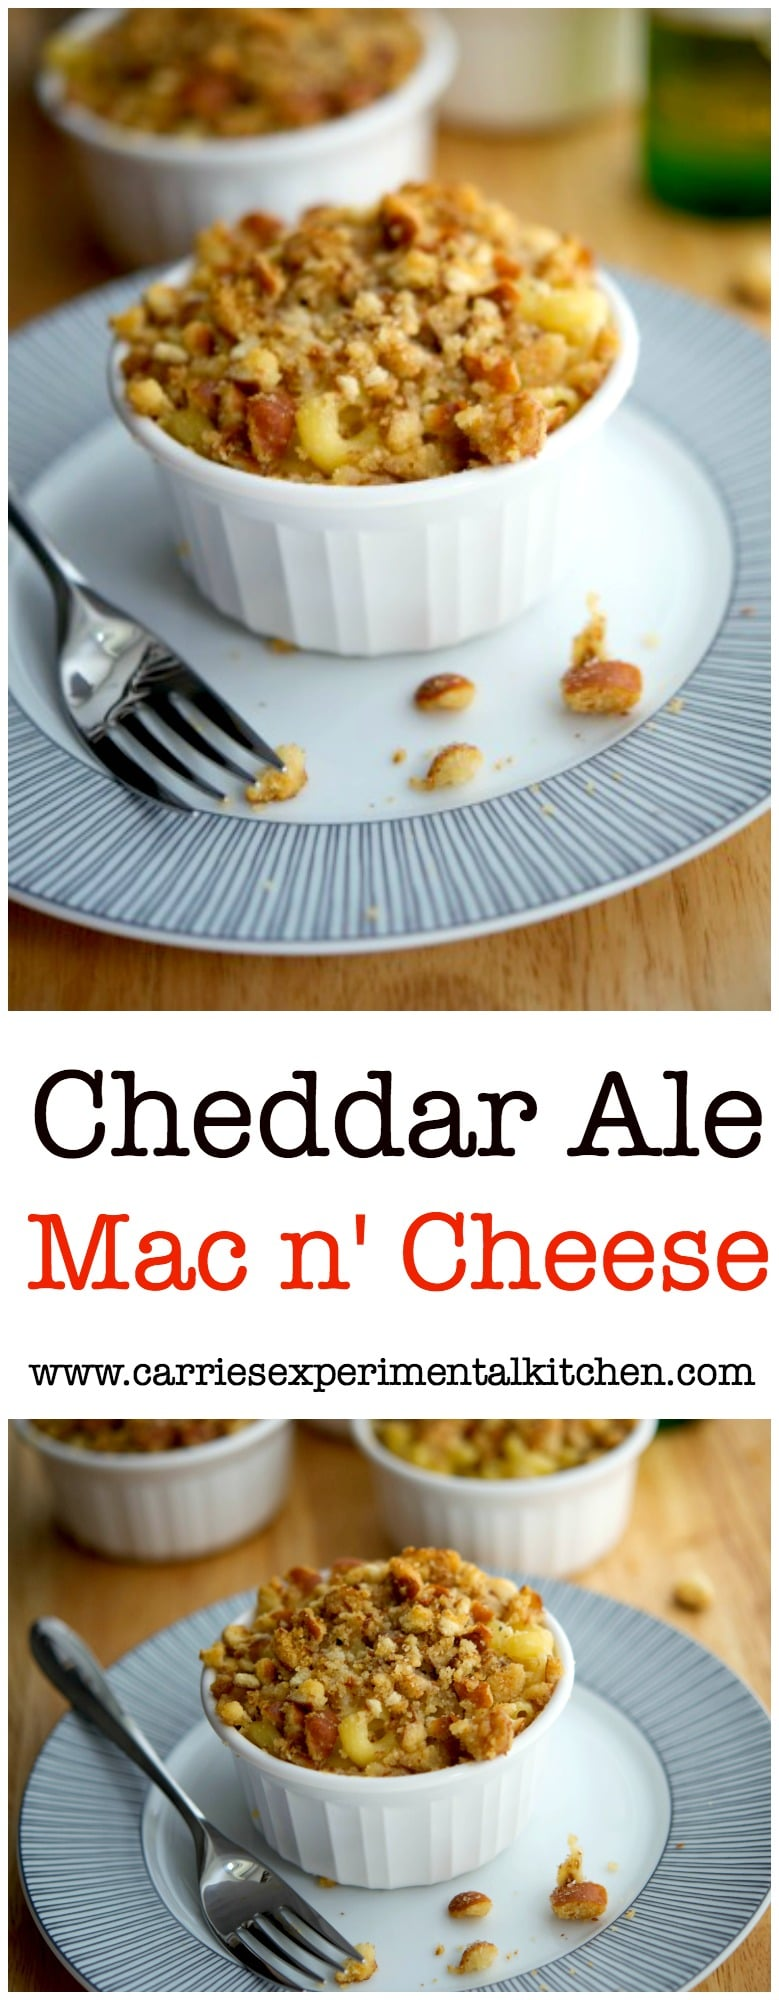 Cheddar Ale Mac n' Cheese: A creamy, grown up twist to classic mac n' cheese using cheddar, ale and a sourdough pretzel buttery crumb topping. #pasta #macandcheese